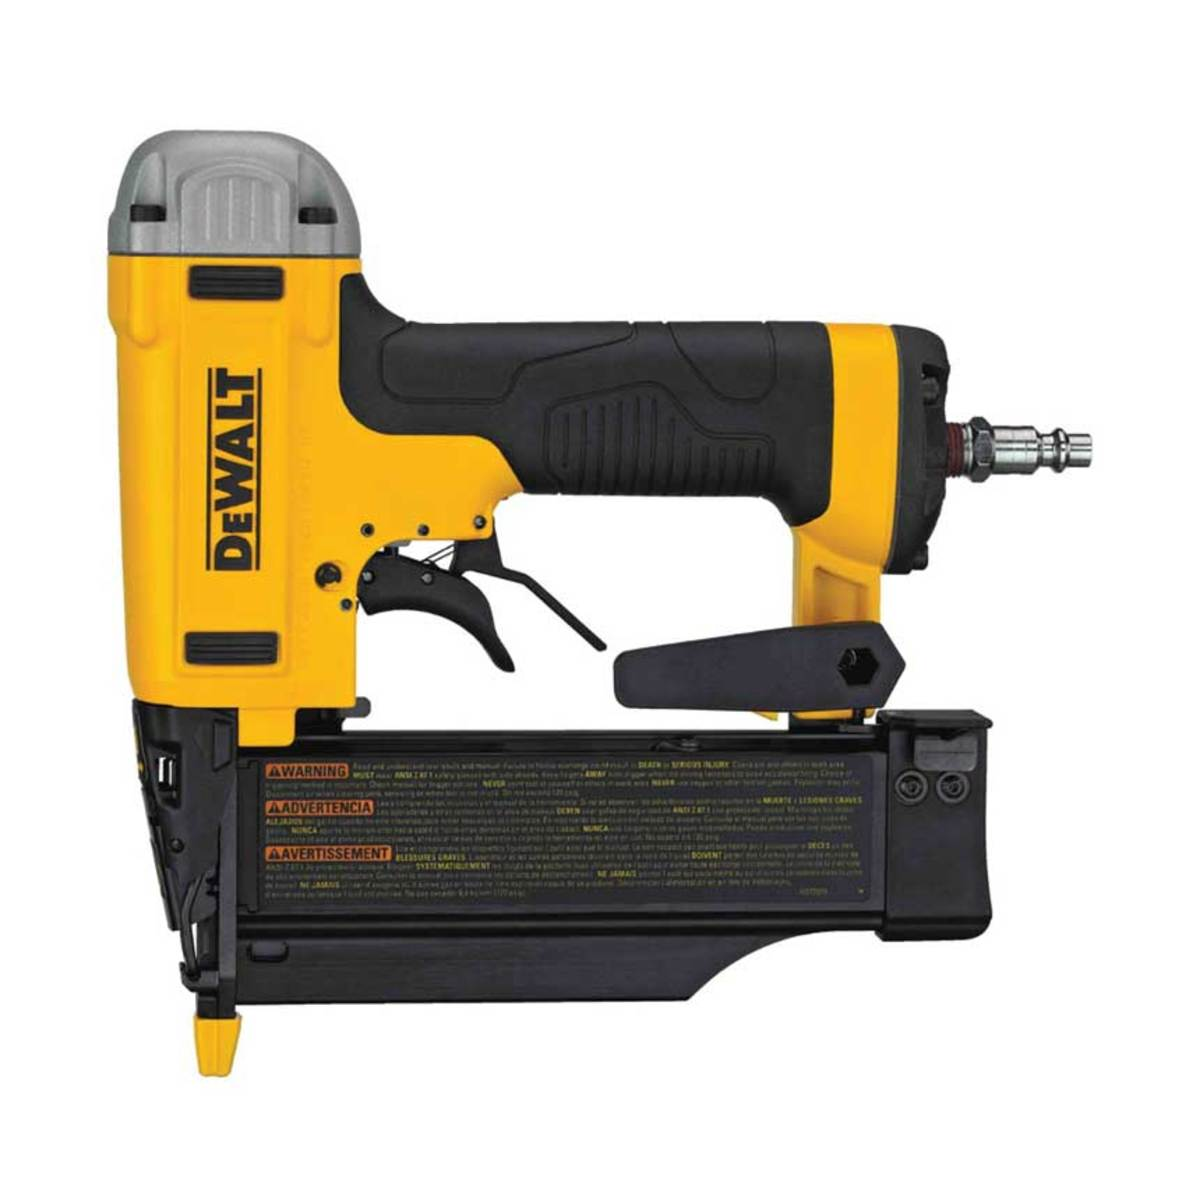 DeWalt's model DWF-P2350K.